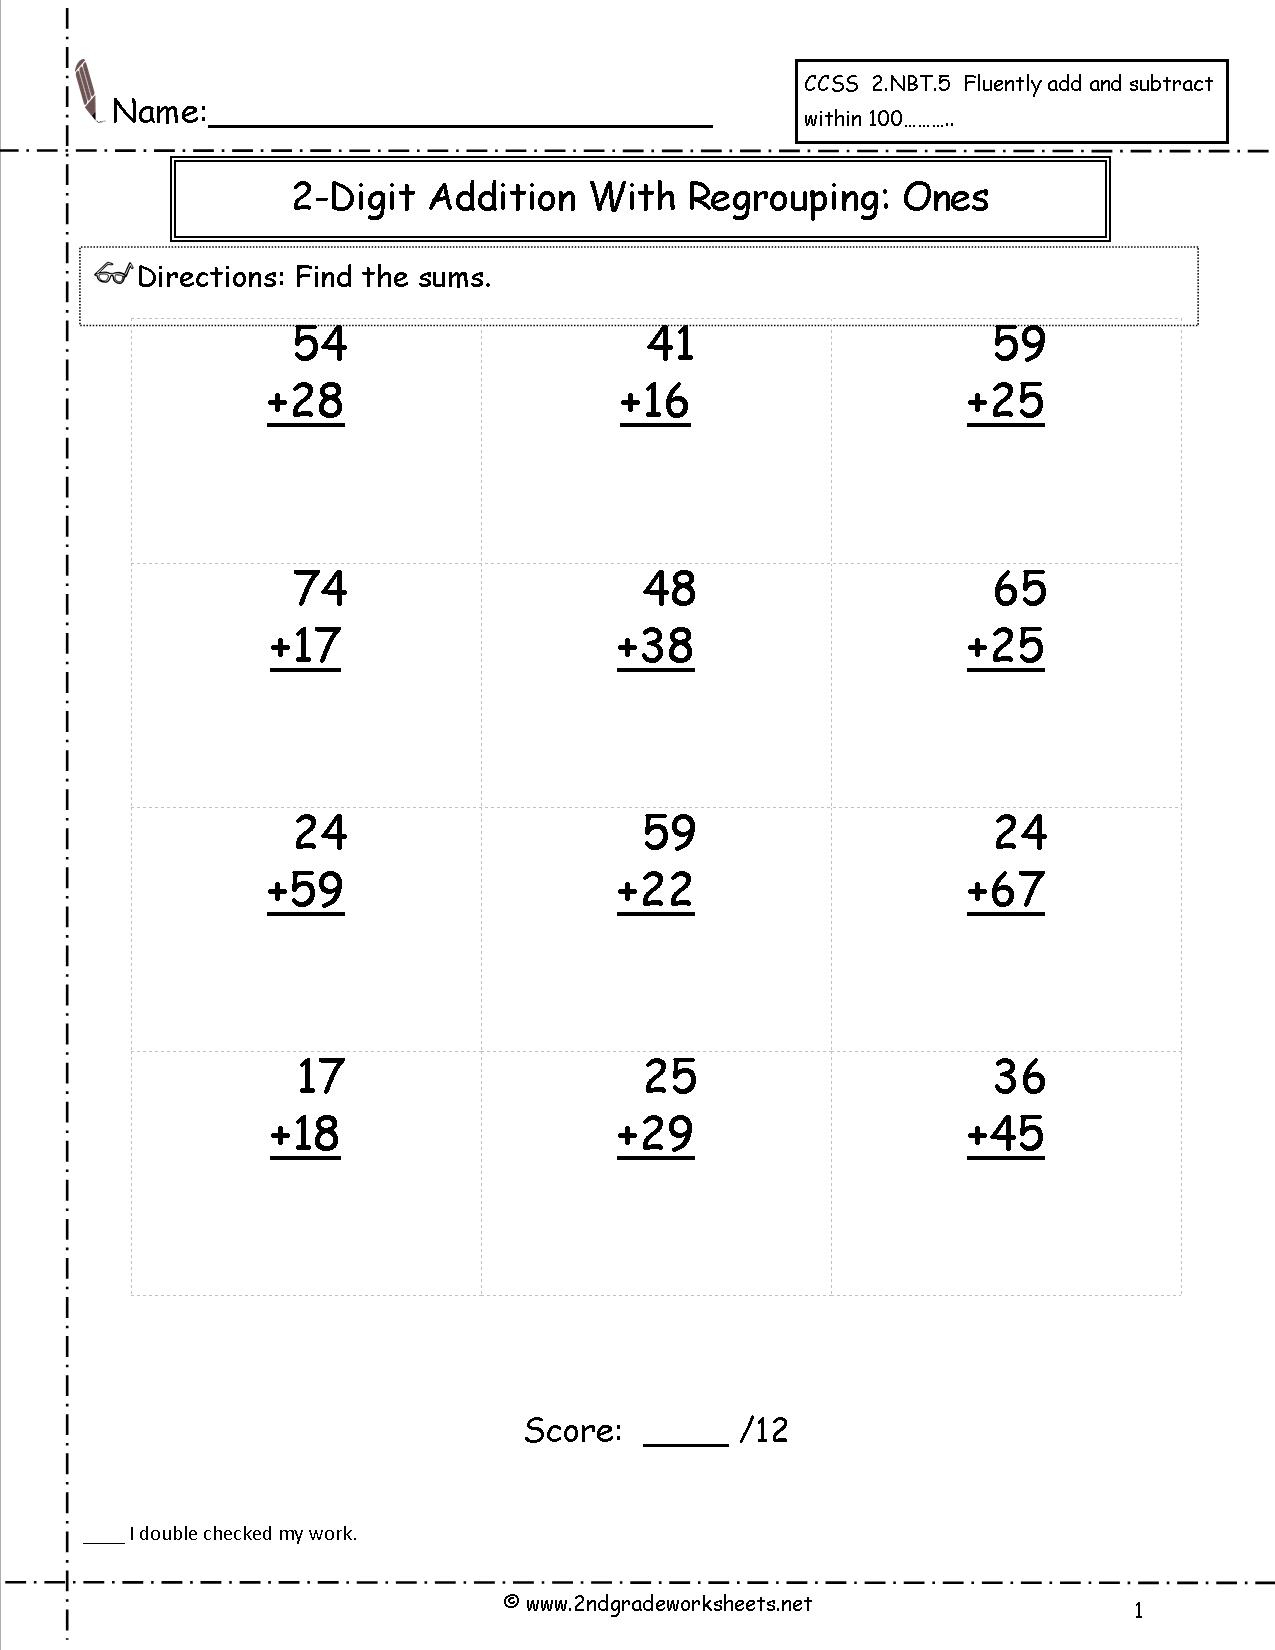 Two Digit Addition Worksheets - Free Printable Two Digit Addition | Free Printable Two Digit Addition Worksheets